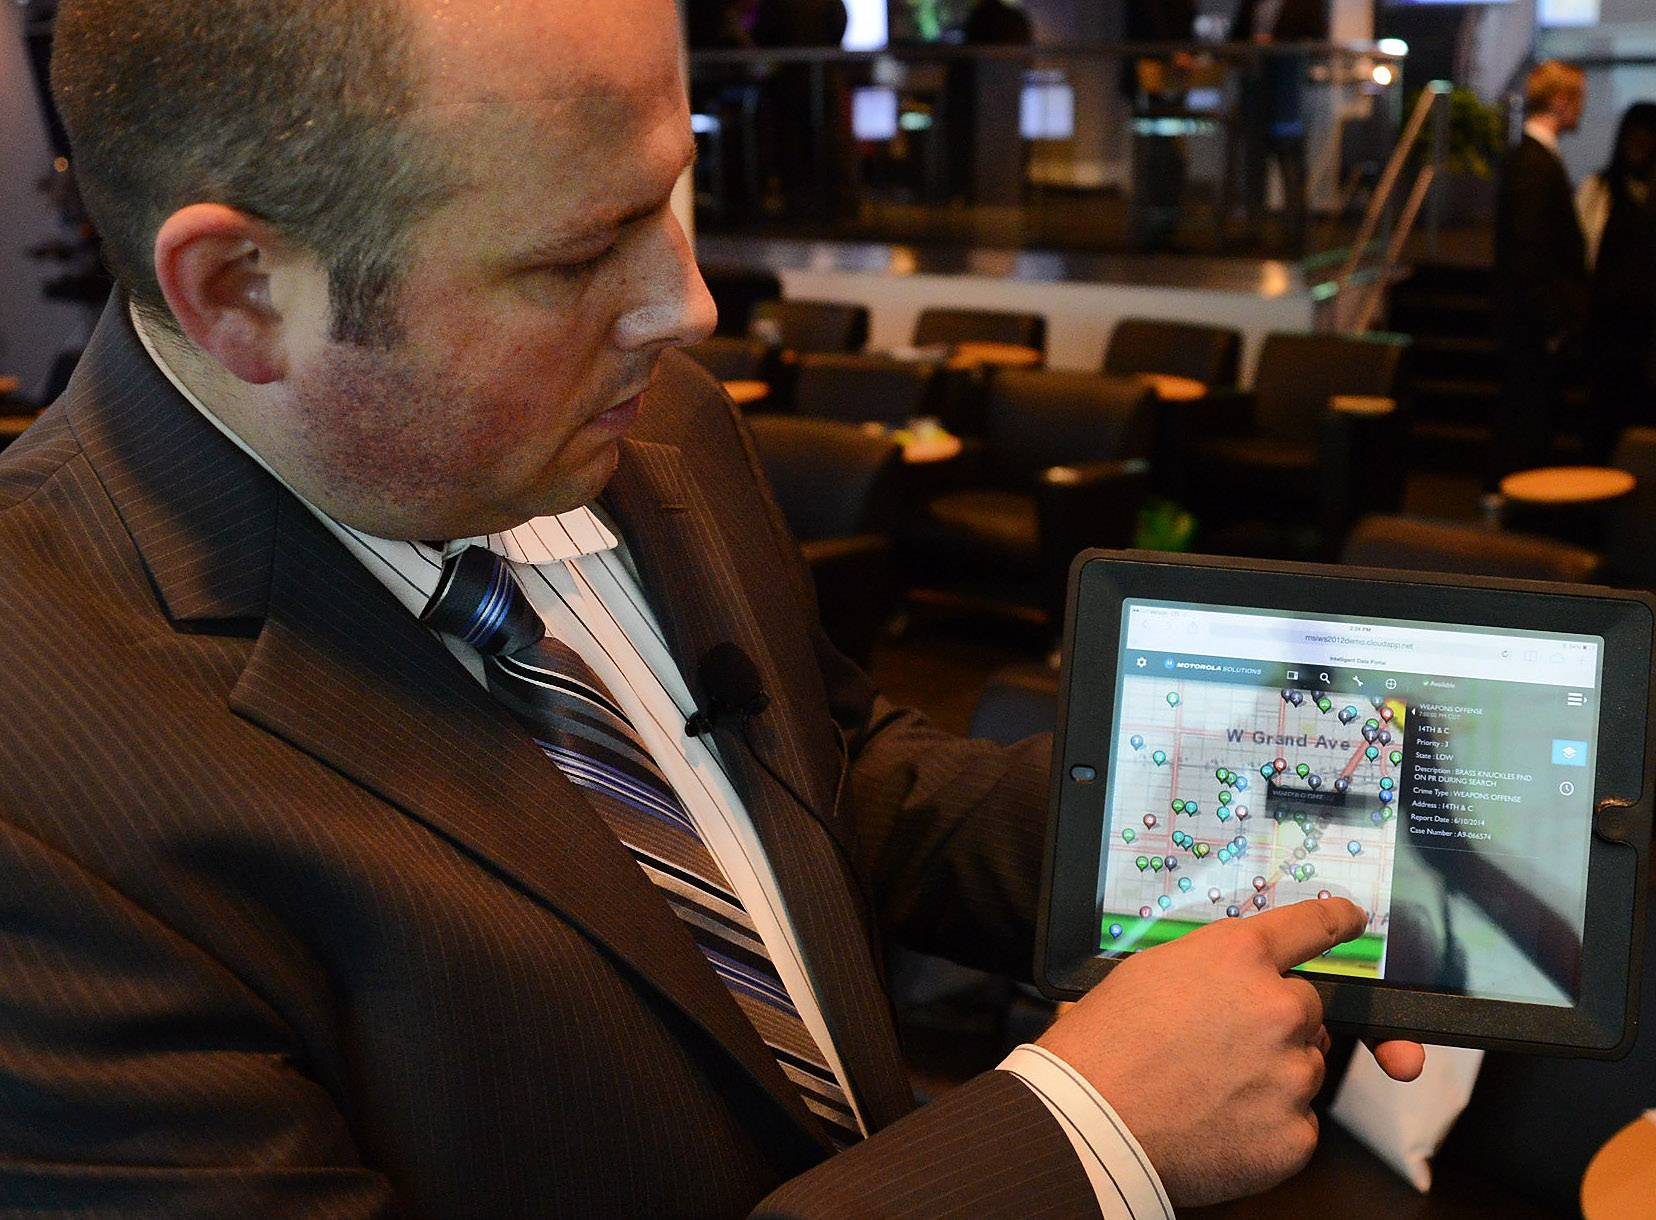 New Motorola Solutions product maps, analyzes data for emergency responders